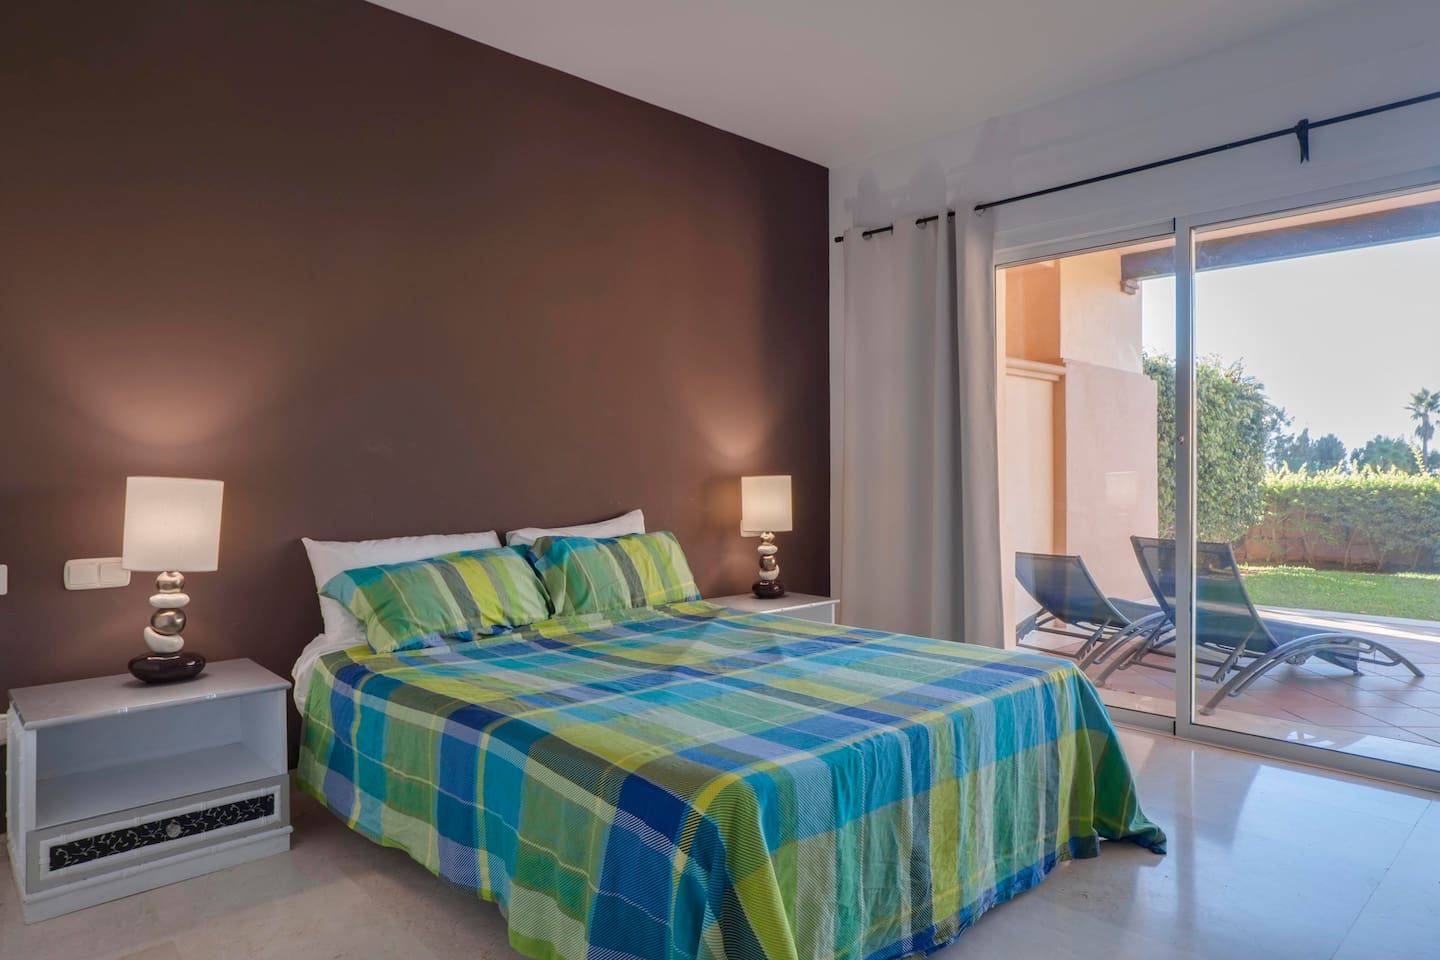 Master bedroom which opens out onto the terrace,gardens and pools.